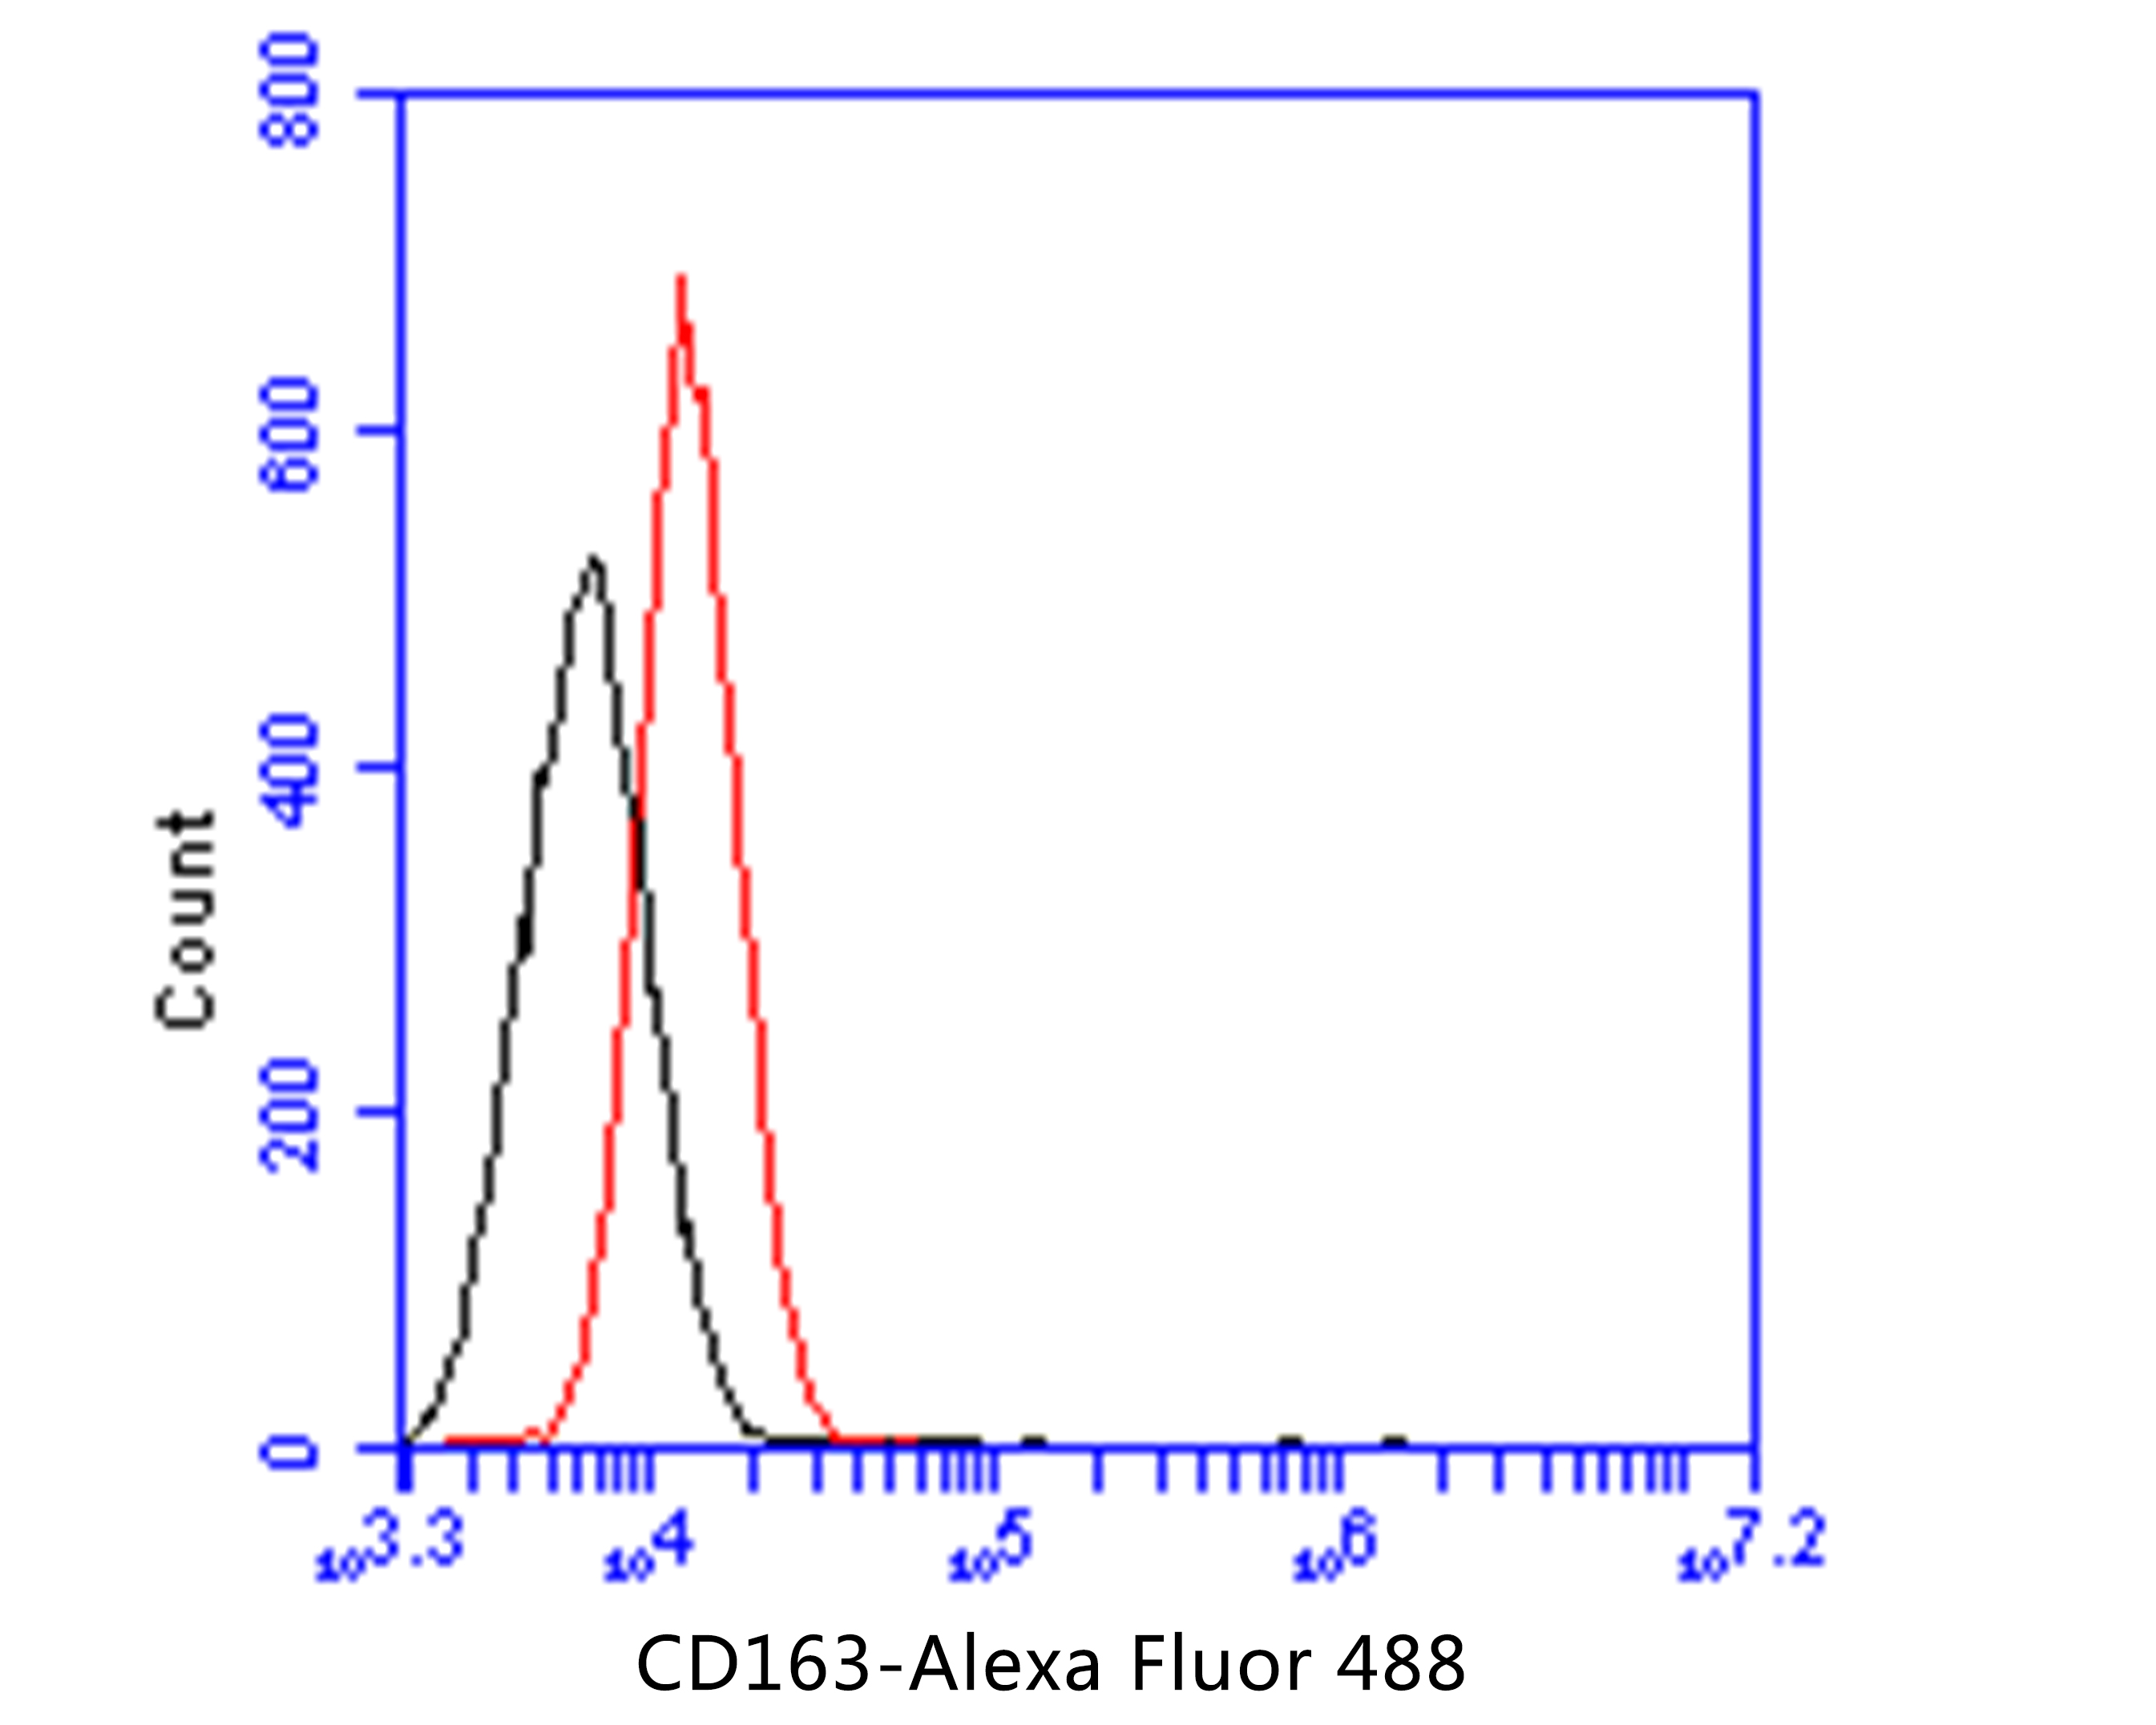 Flow cytometric analysis of CD163 was done on HT-29 cells. The cells were fixed, permeabilized and stained with the primary antibody (EM1901-91, 1/50) (red). After incubation of the primary antibody at room temperature for an hour, the cells were stained with a Alexa Fluor 488-conjugated Goat anti-Mouse IgG Secondary antibody at 1/1000 dilution for 30 minutes.Unlabelled sample was used as a control (cells without incubation with primary antibody; black).